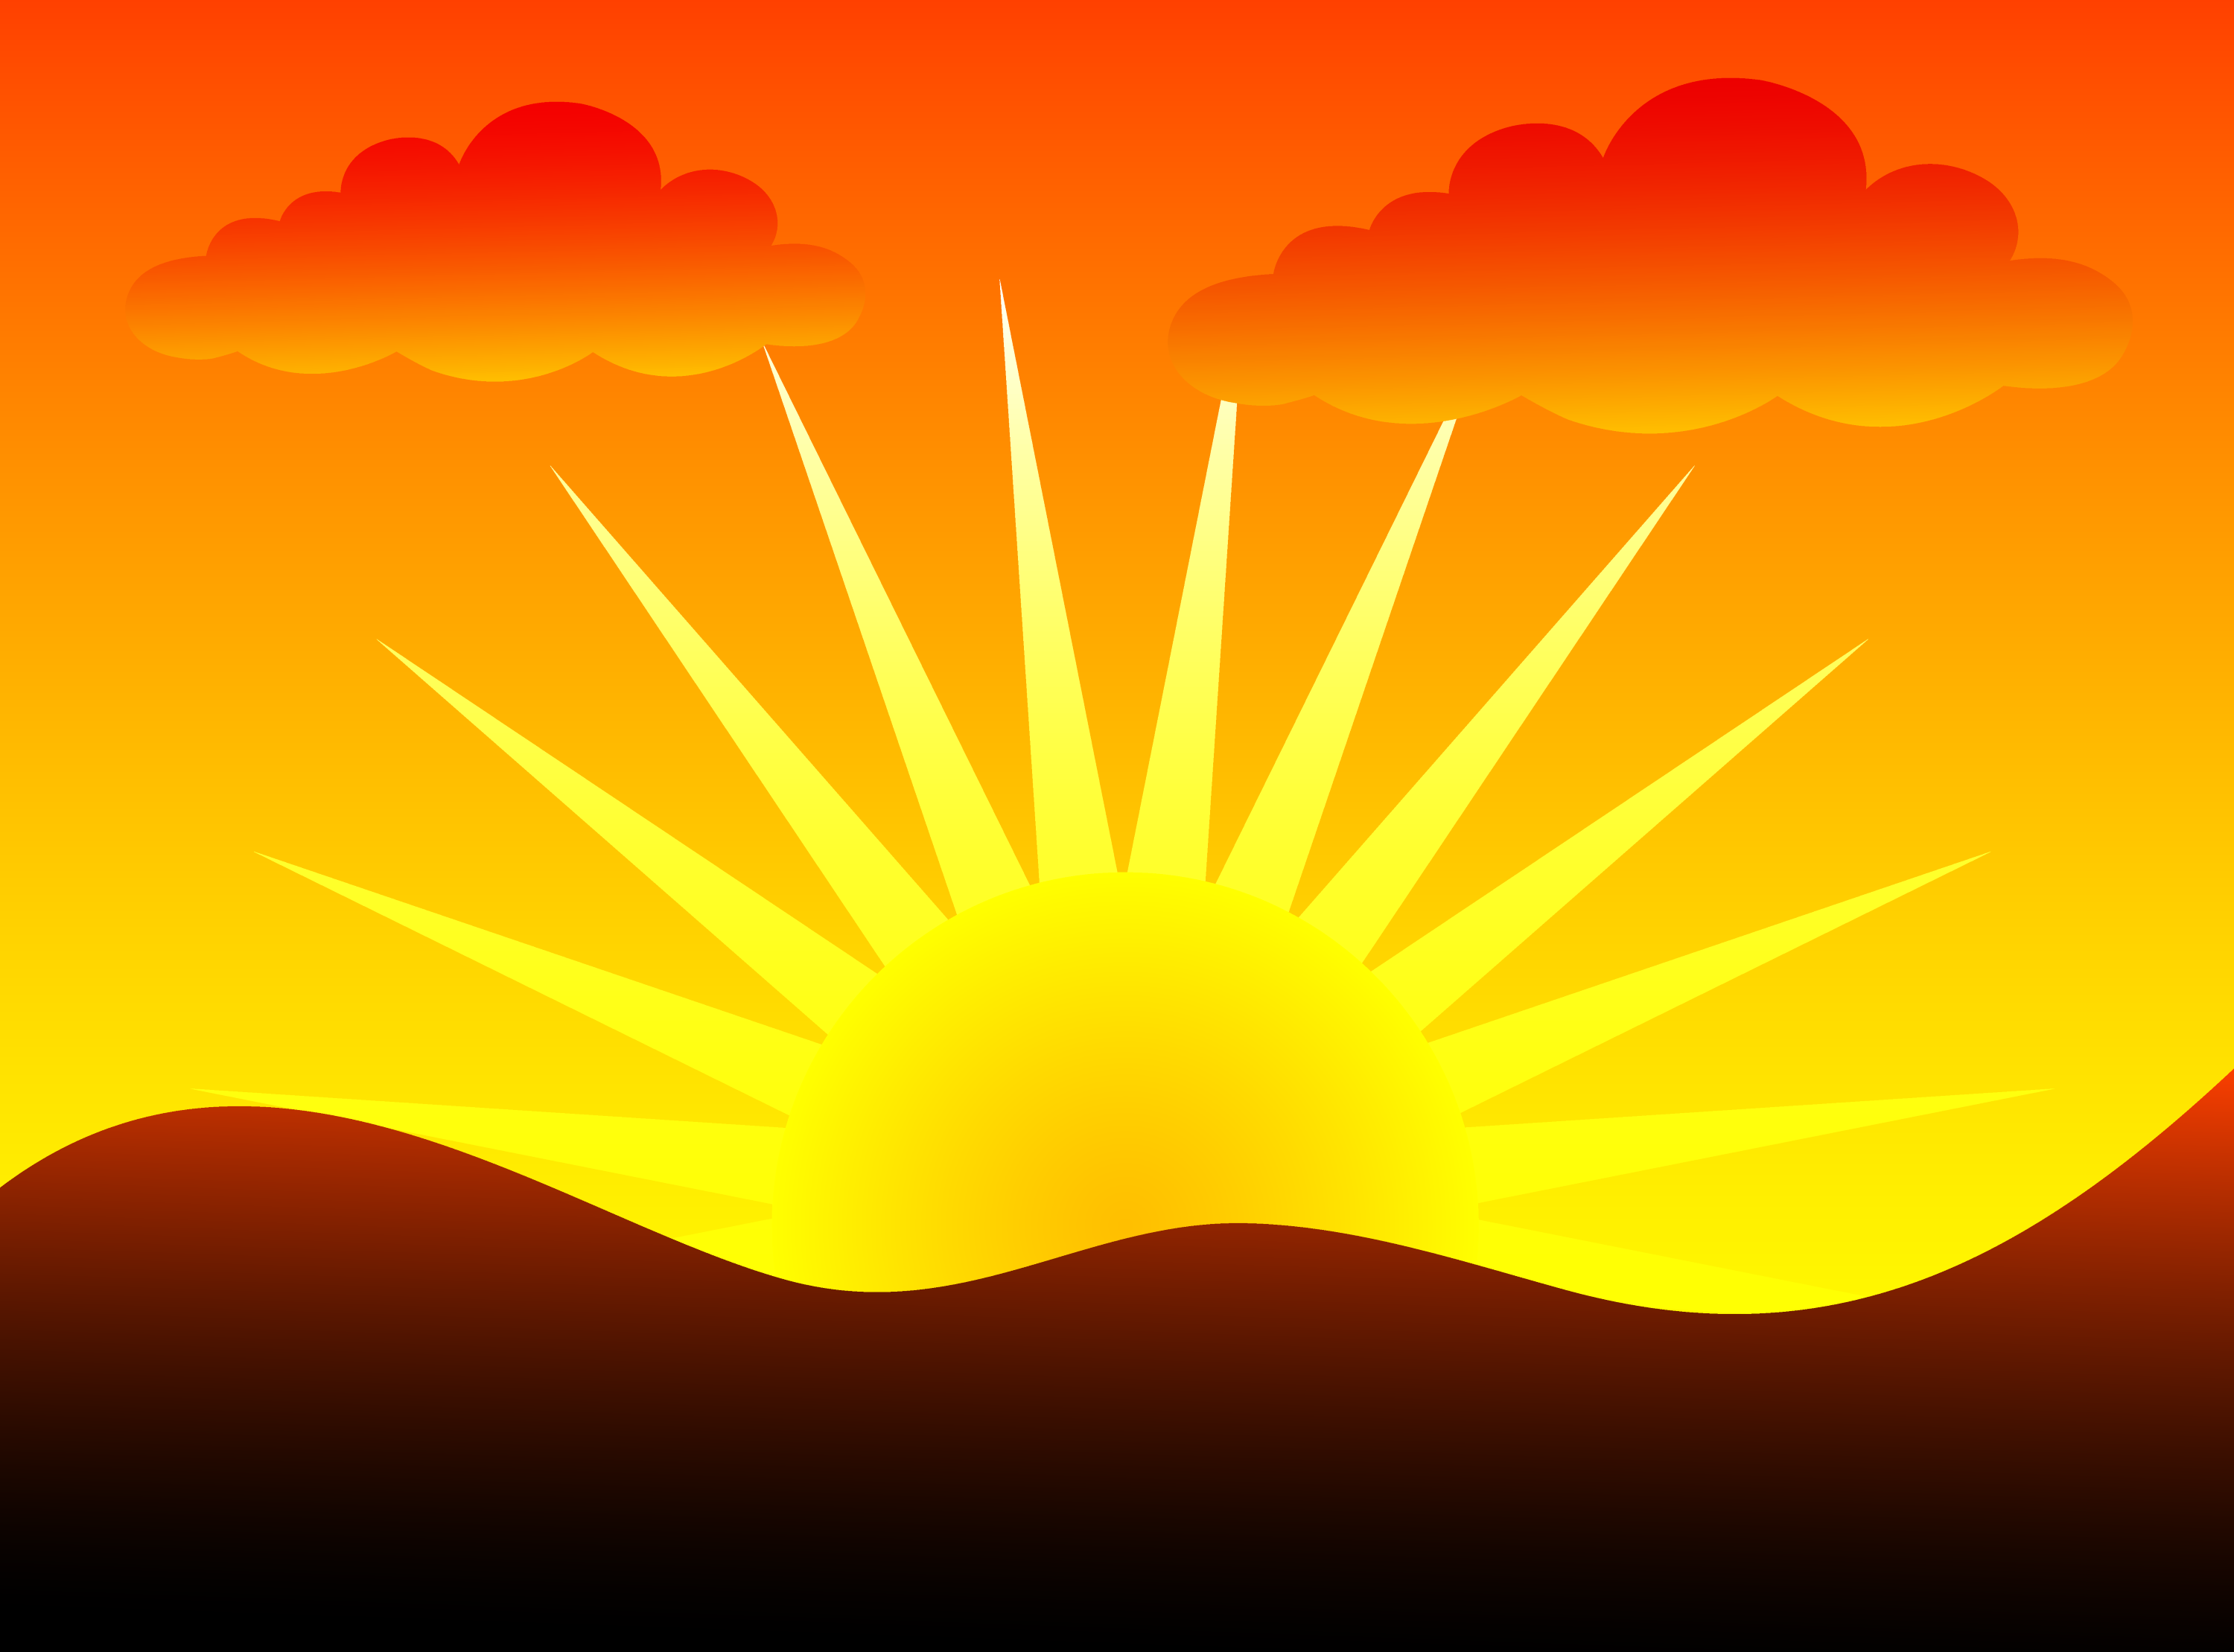 Sunset Over Hills - Free Clip Art